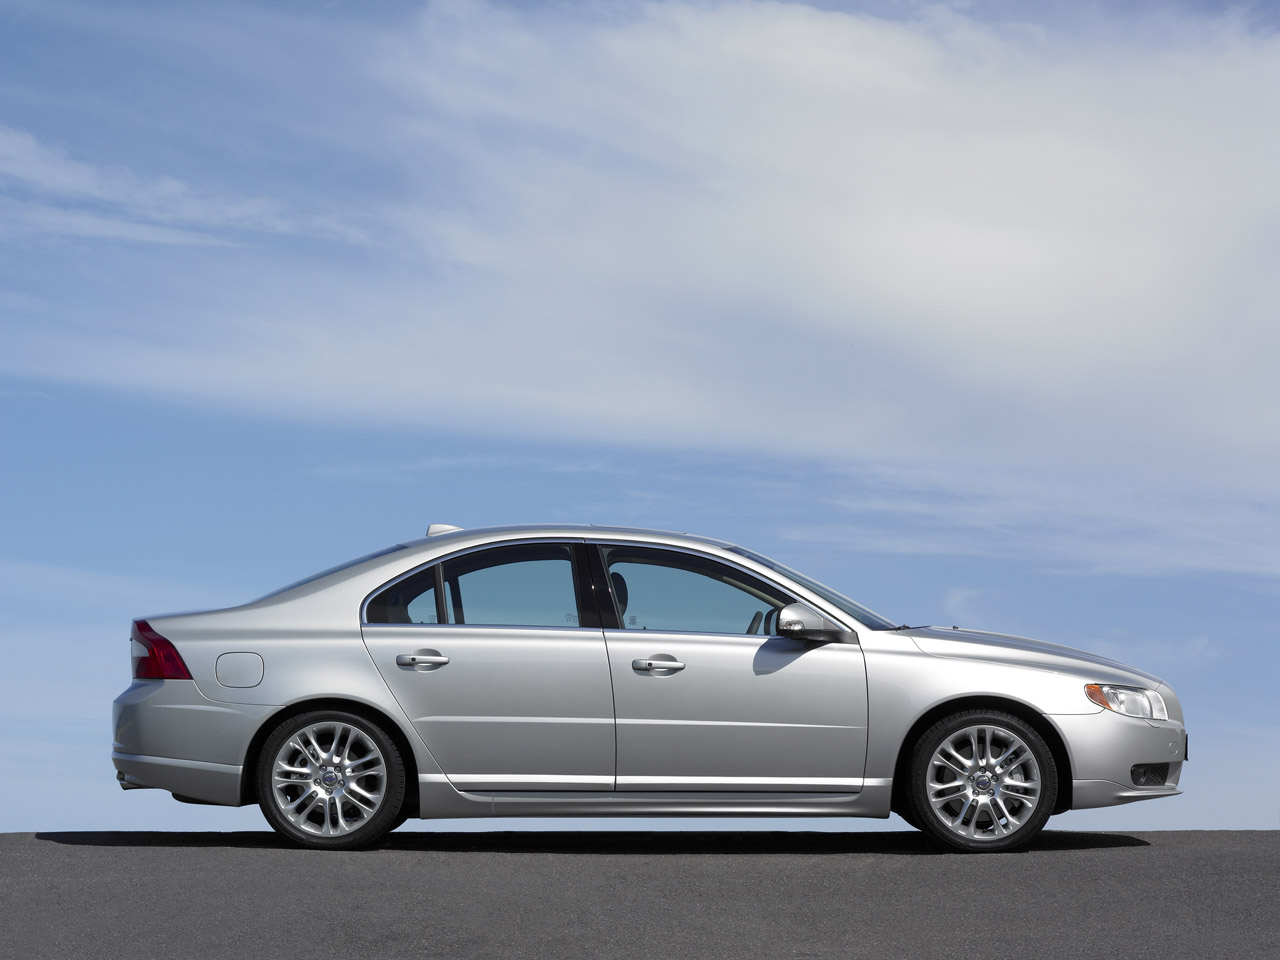 2007 volvo s80 1 Steering issues makes Volvo recall 2007 S80 Sedan